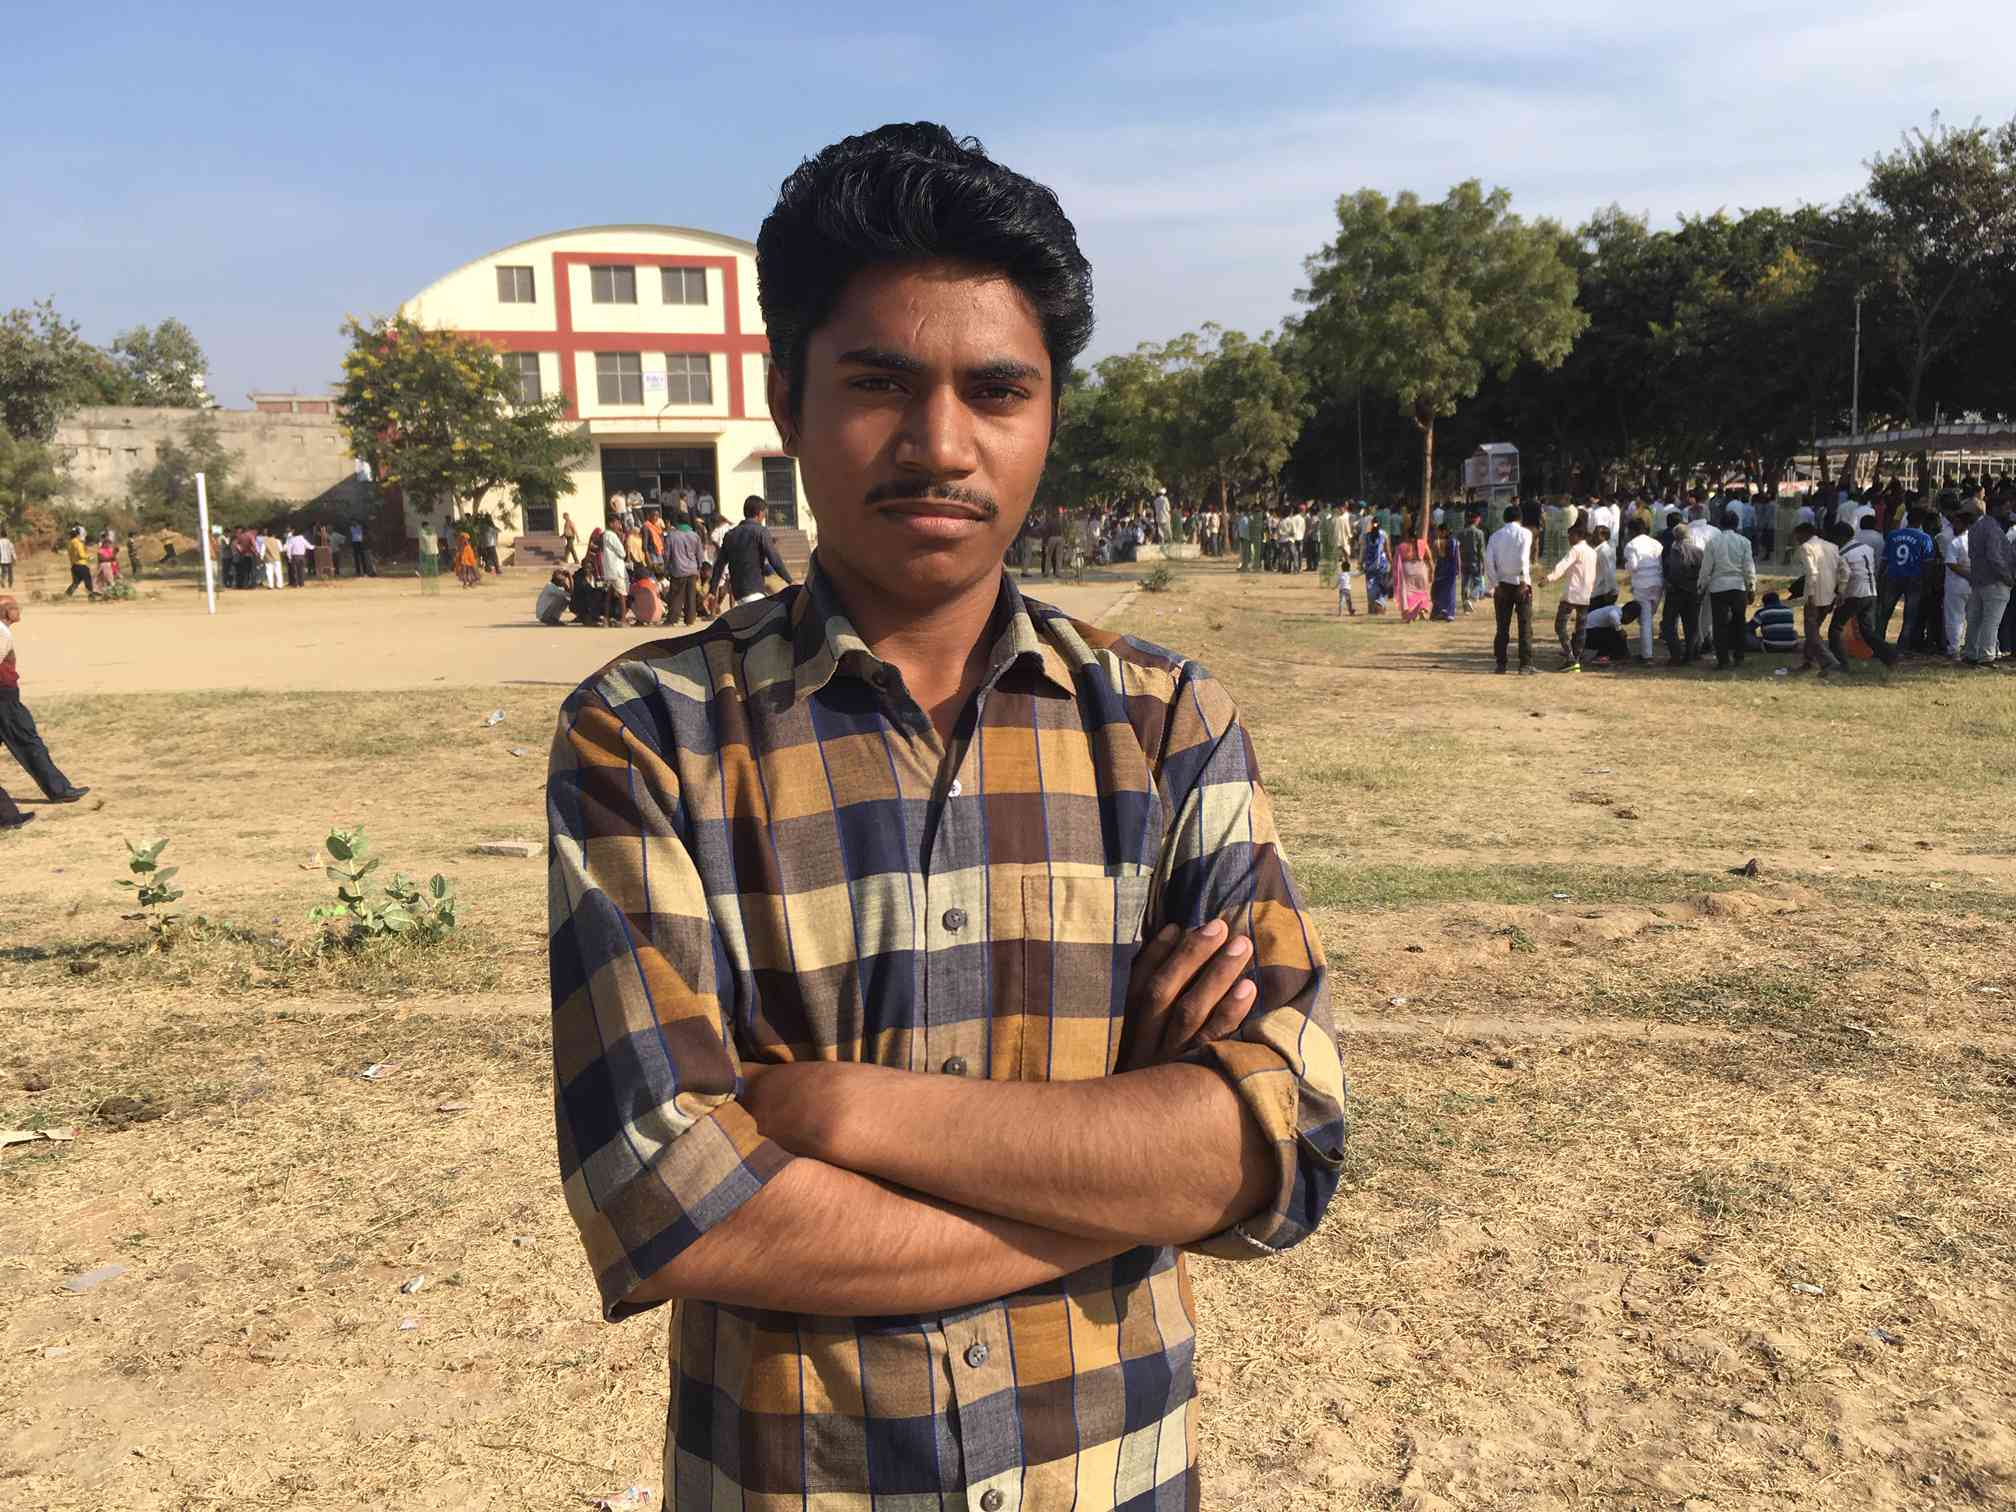 The son of a farmer, 18-year-old Mann Singh is studying to get a government job.